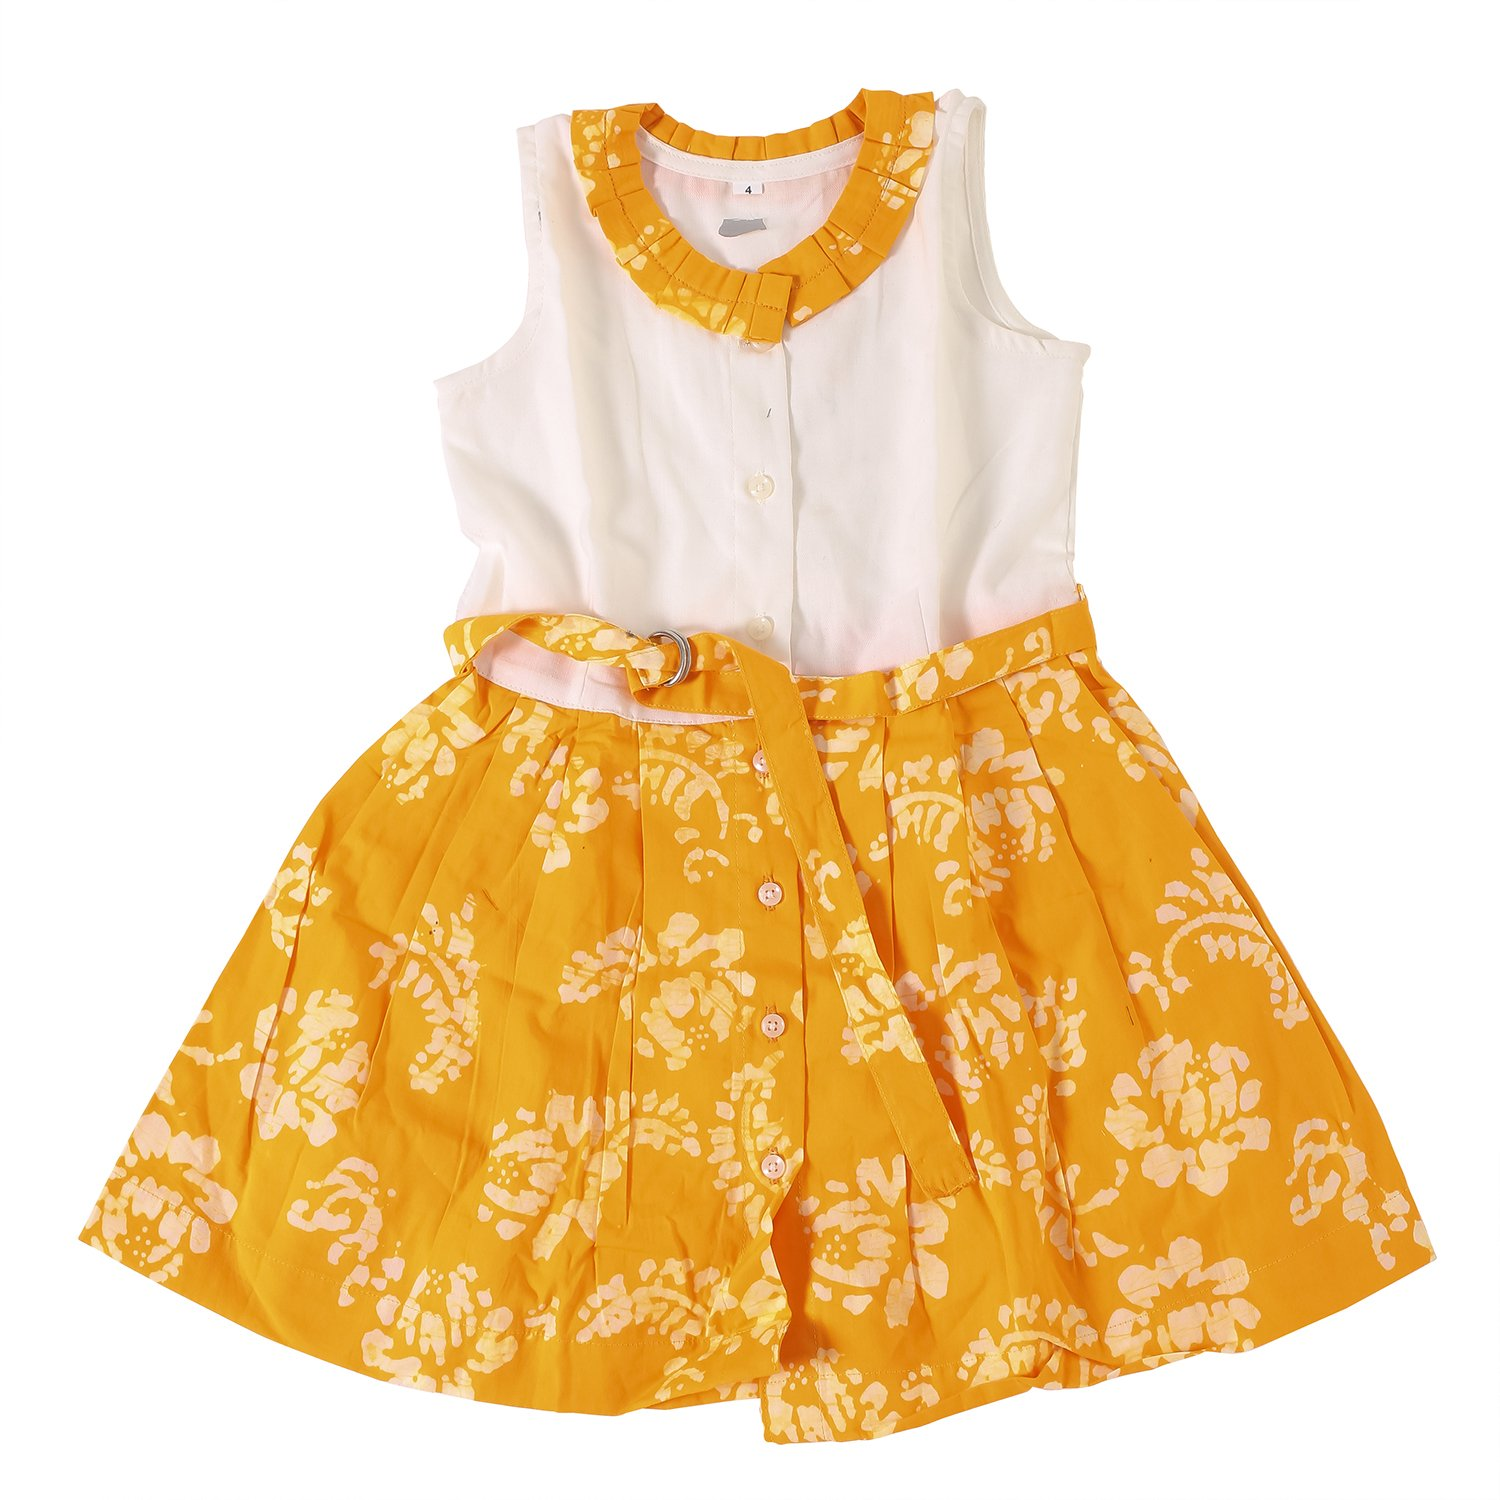 d0a1013e79c83 Twist Girls Kids Solid Linen Cotton Partywear Casual Frocks Dresses - Frock  with Frills, Lace, Button and Belt in Yellow Color With Contrast & Free ...